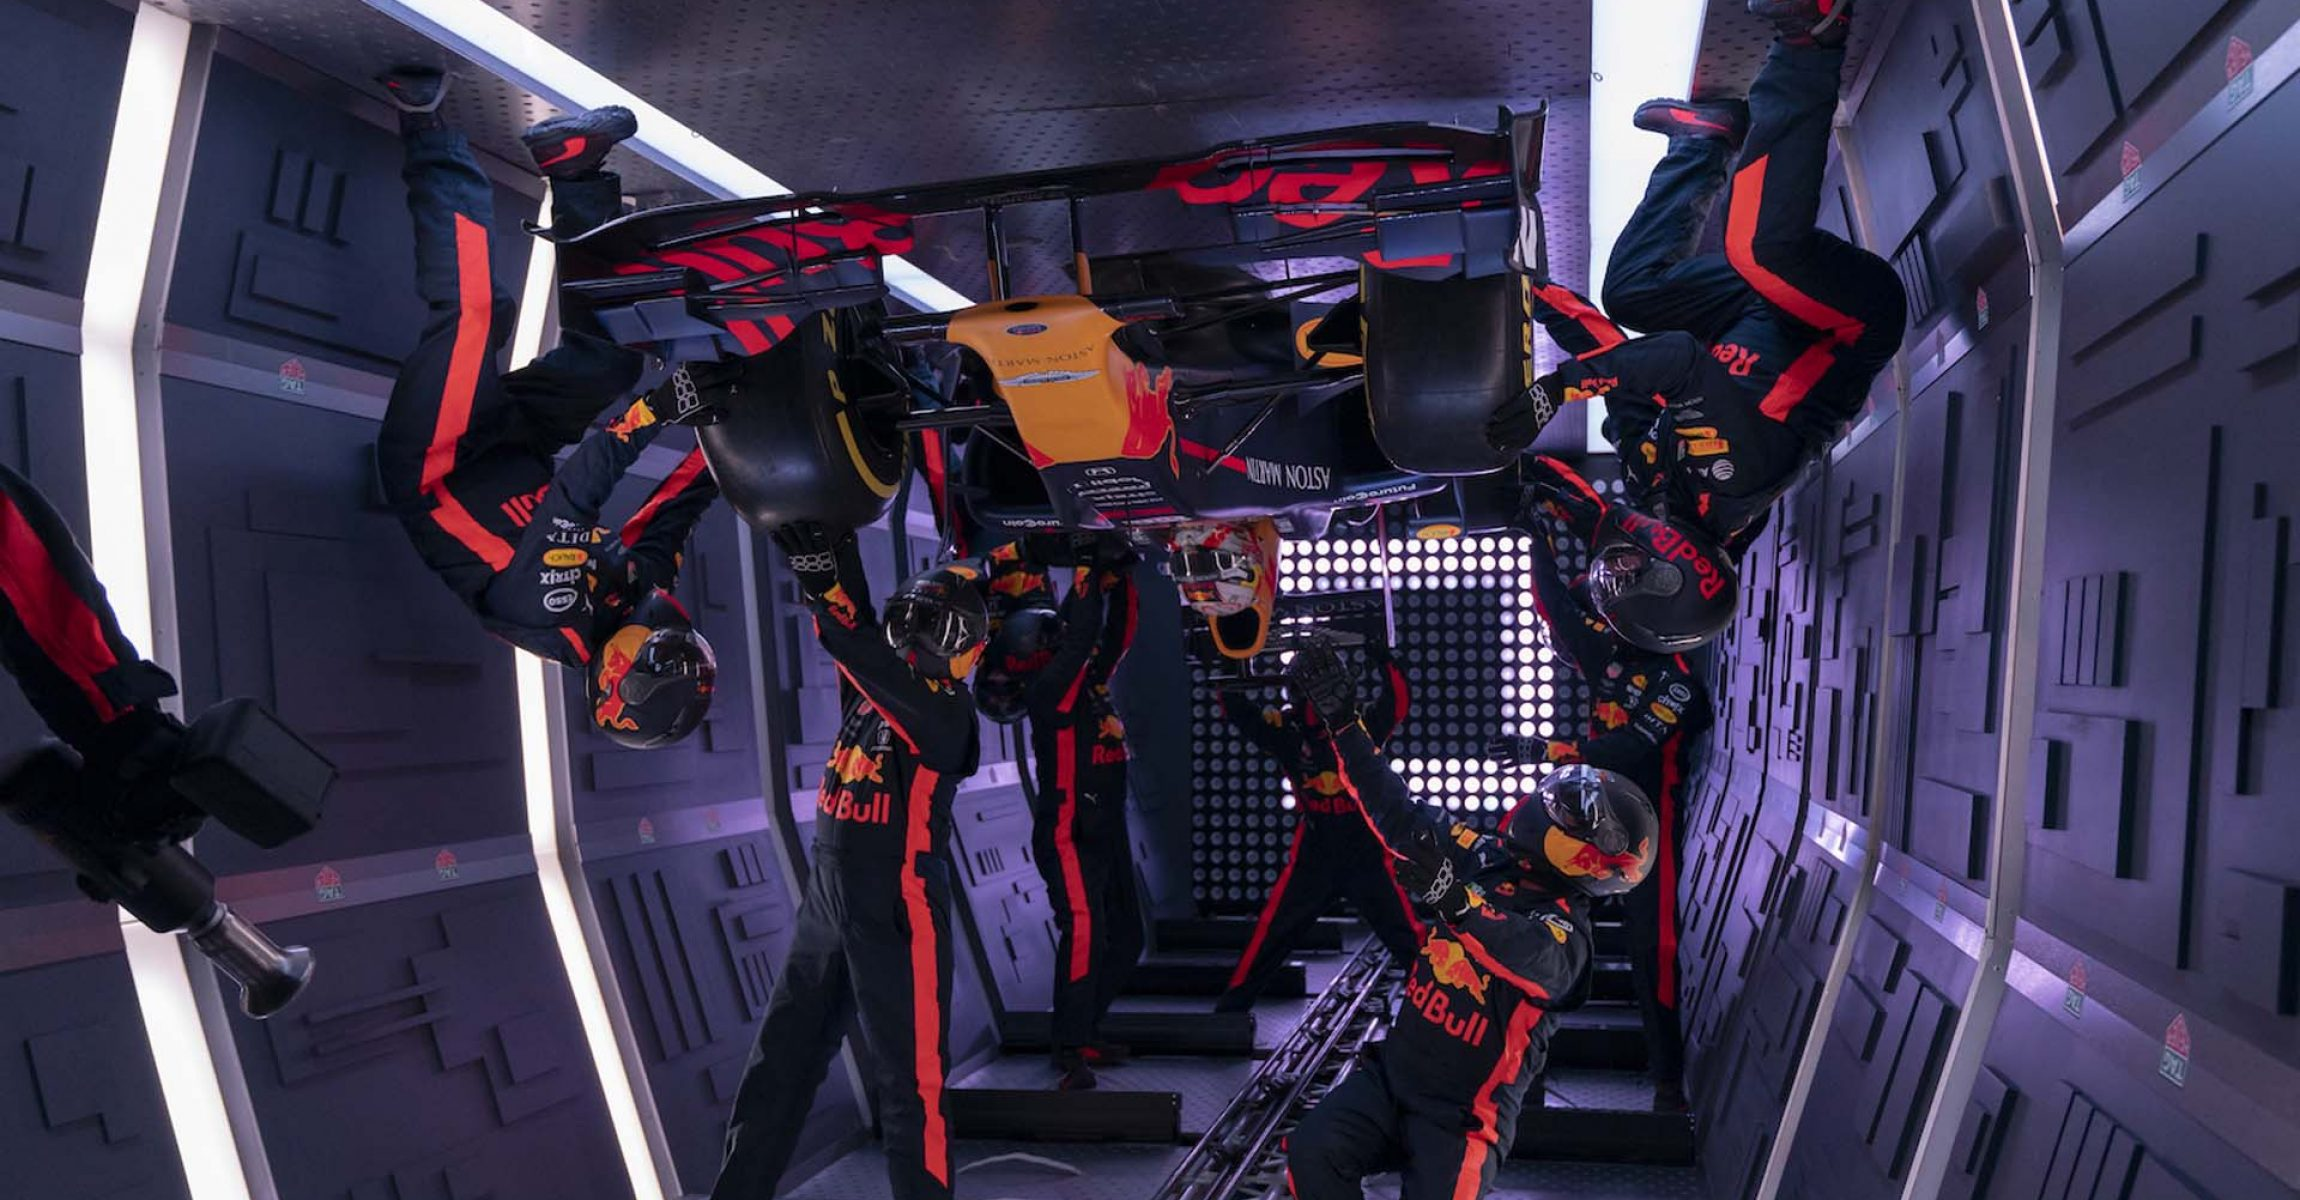 Aston Martin Red Bull Racing team perform a pit stop during the ZeroG project in Moscow, Russia on September 14, 2019